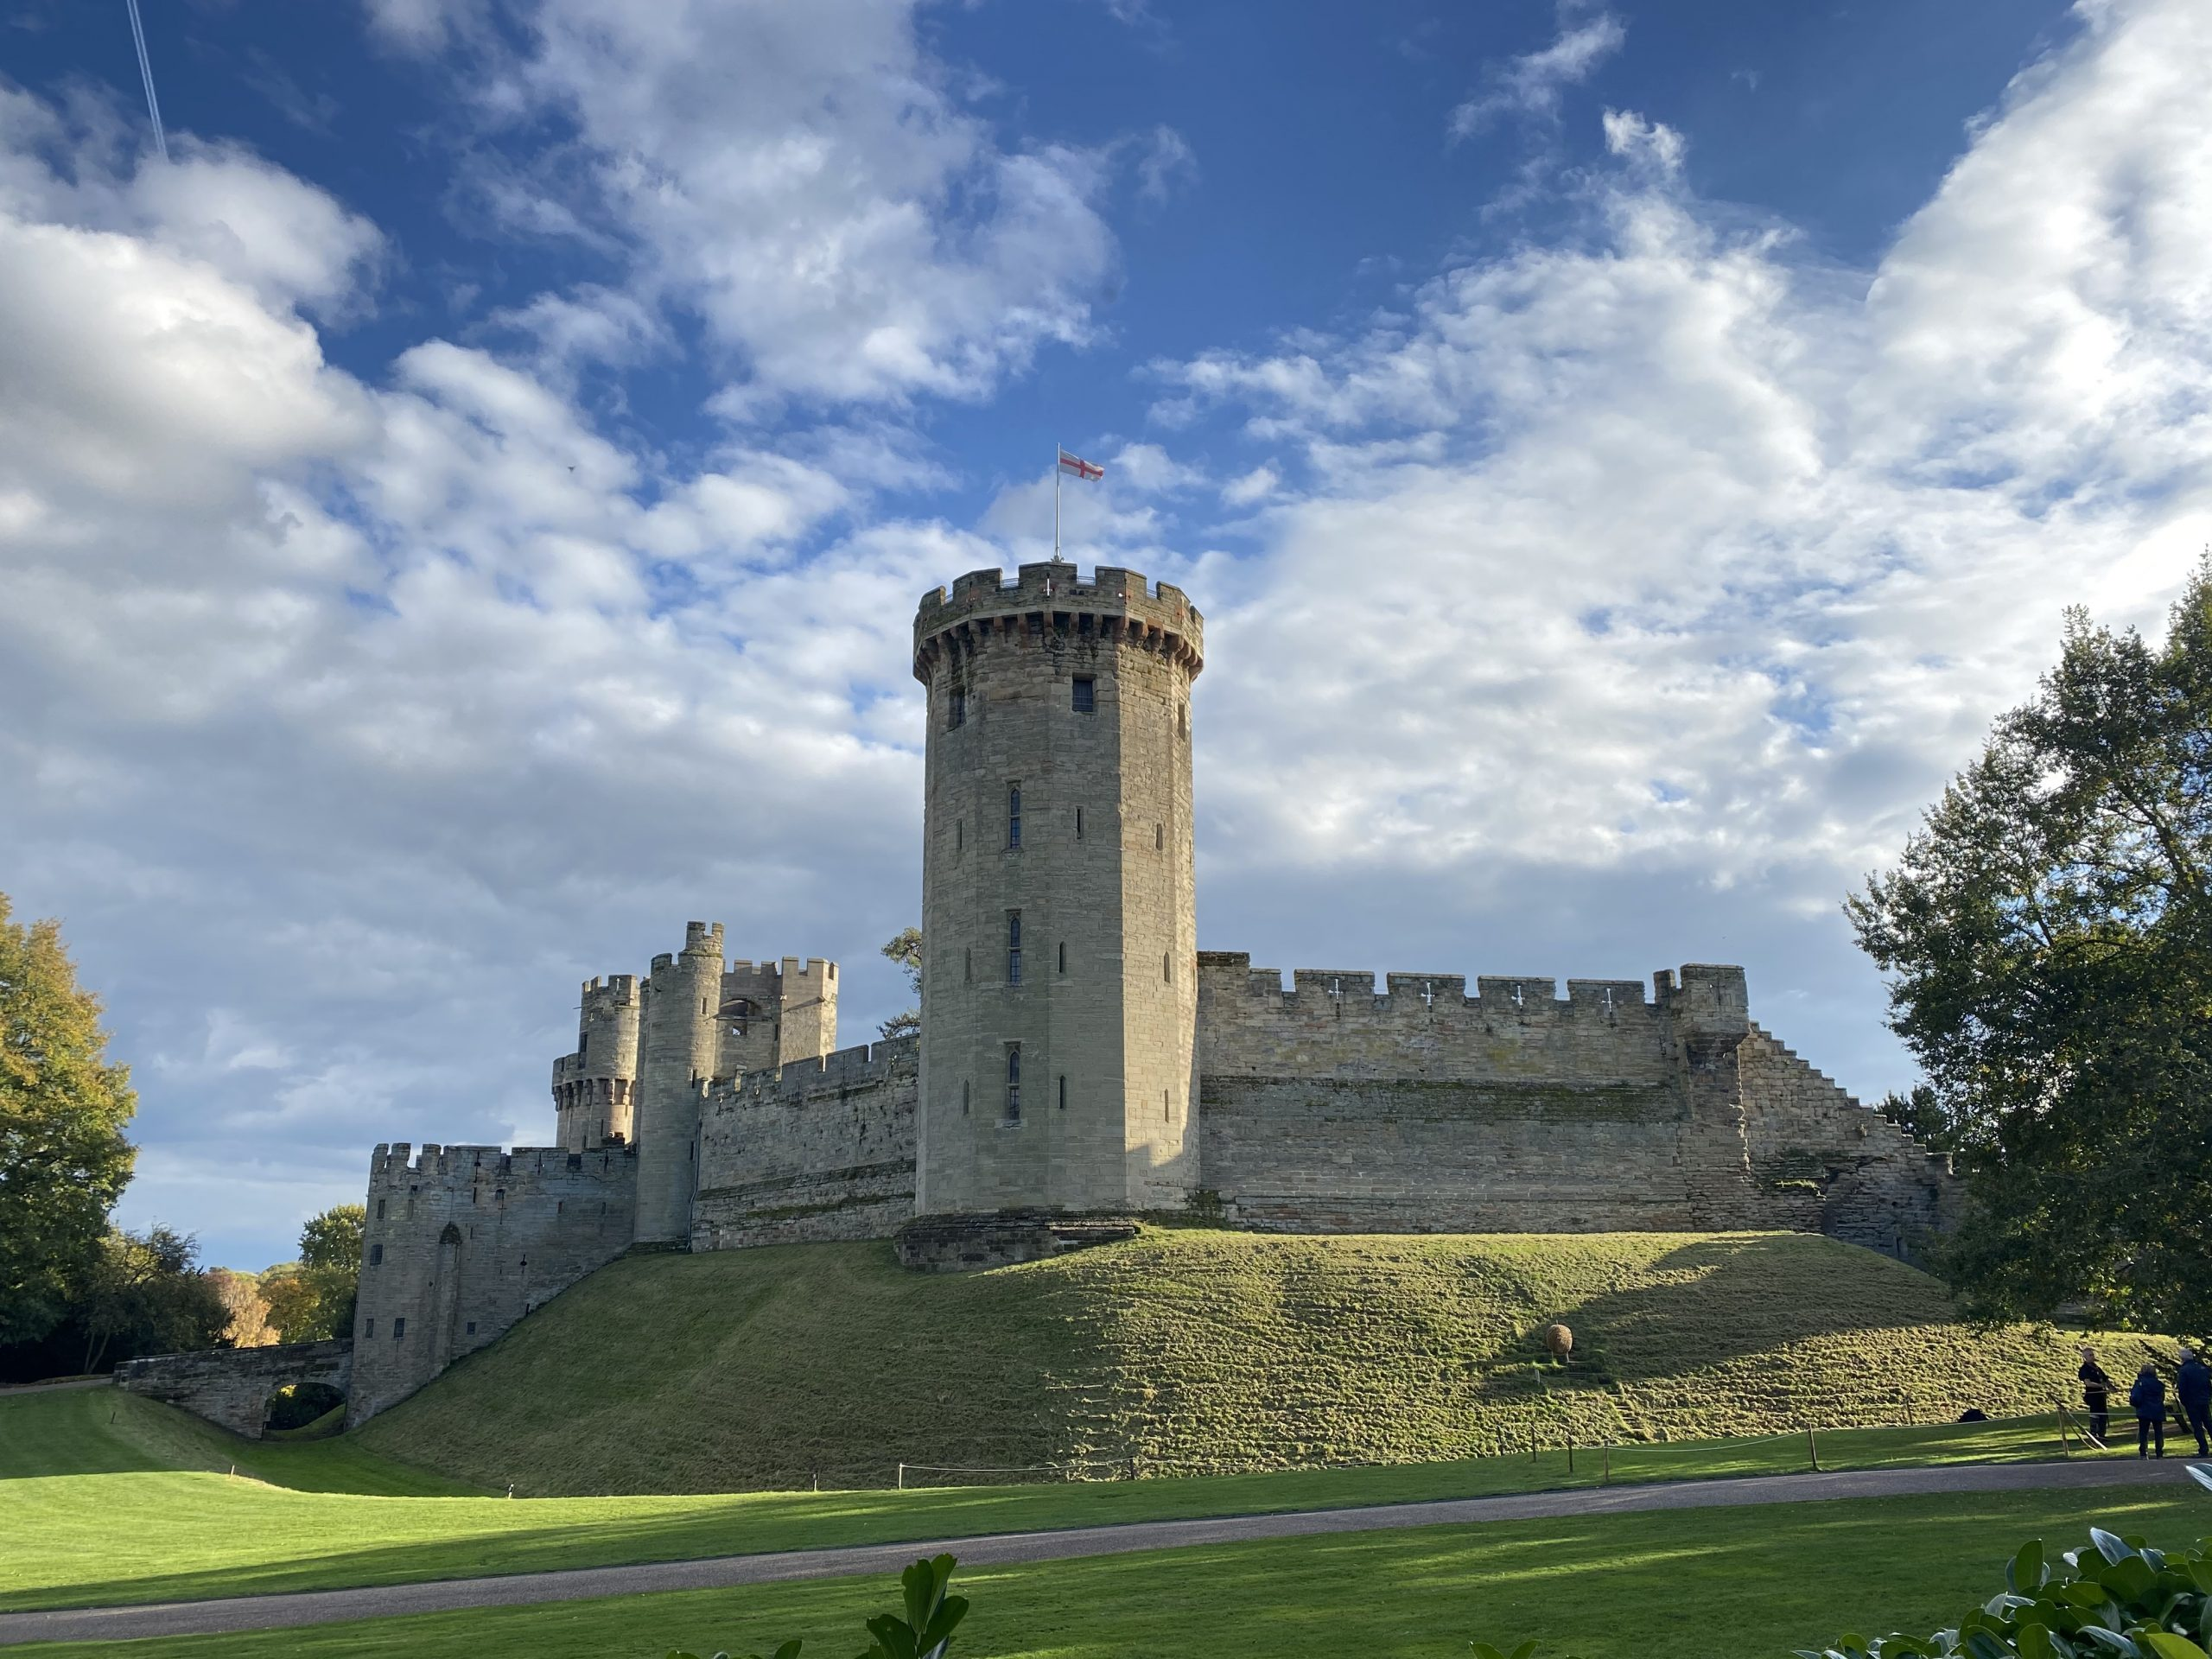 Private Tour of Warwick Castle